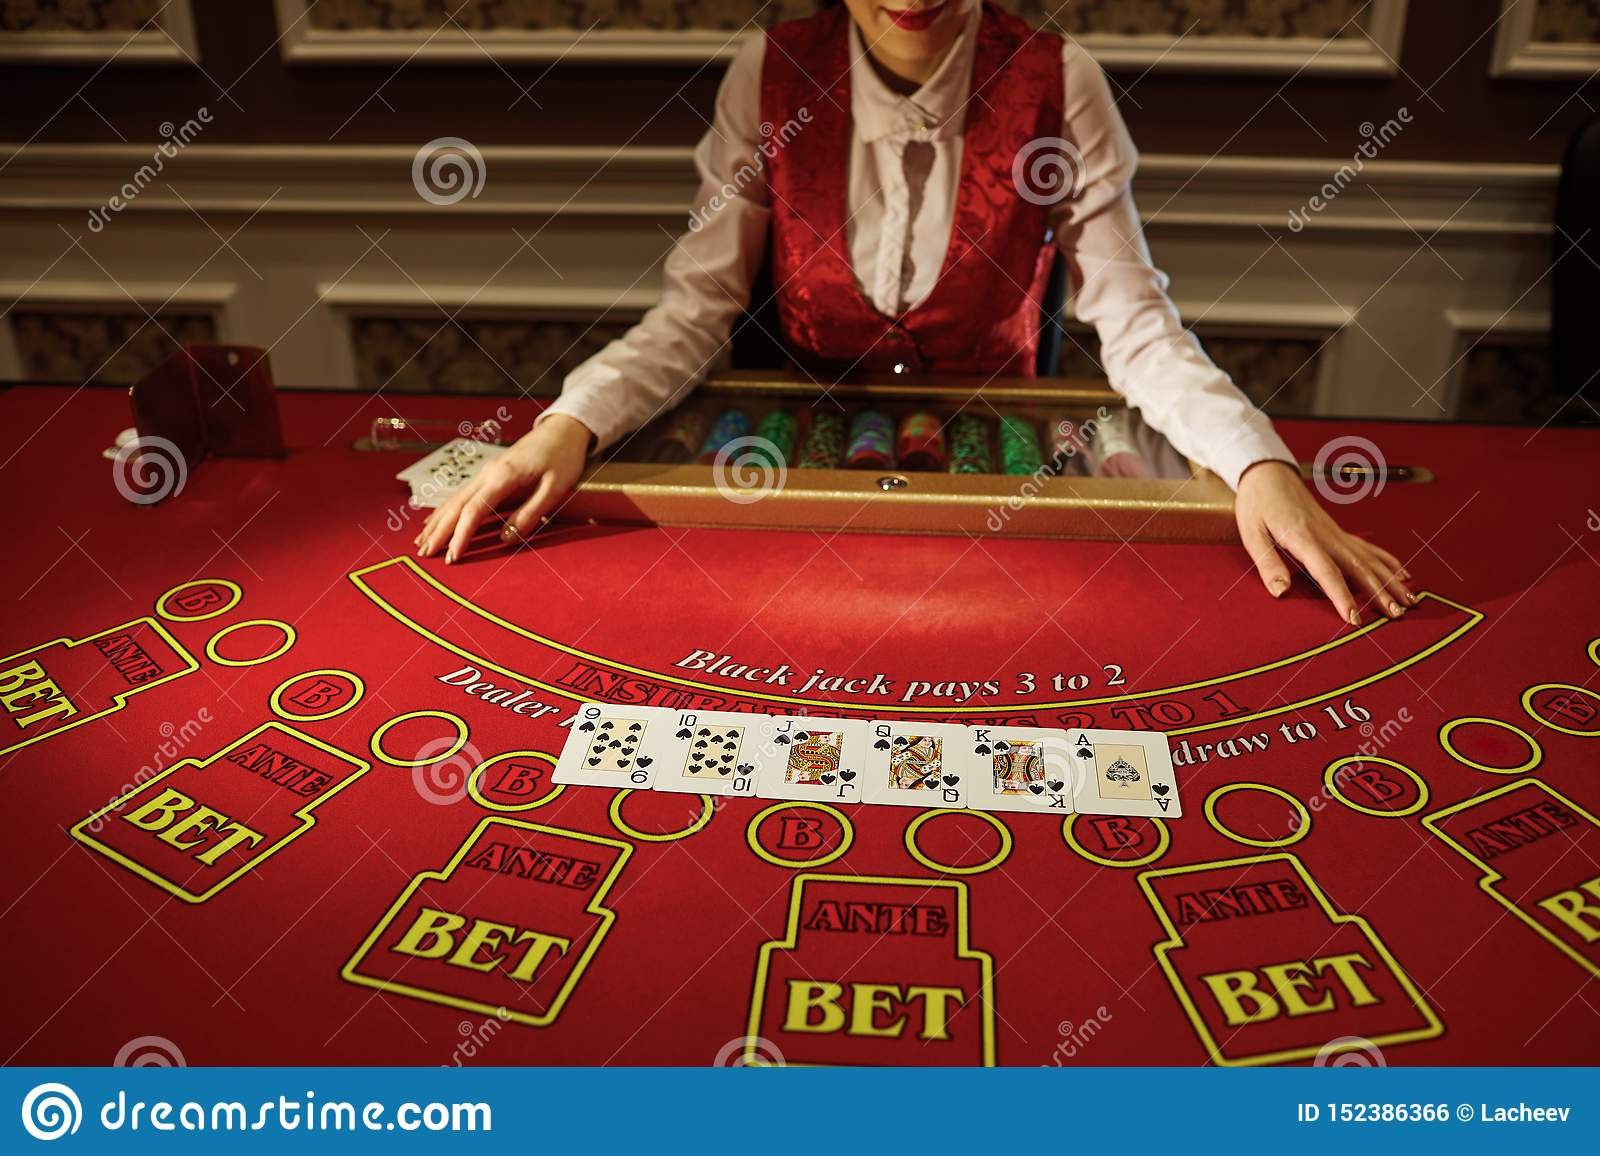 The Croupier In The Casino Does A Shuffle Of Cards Stock Photo Image Of Professional Hands 152386366